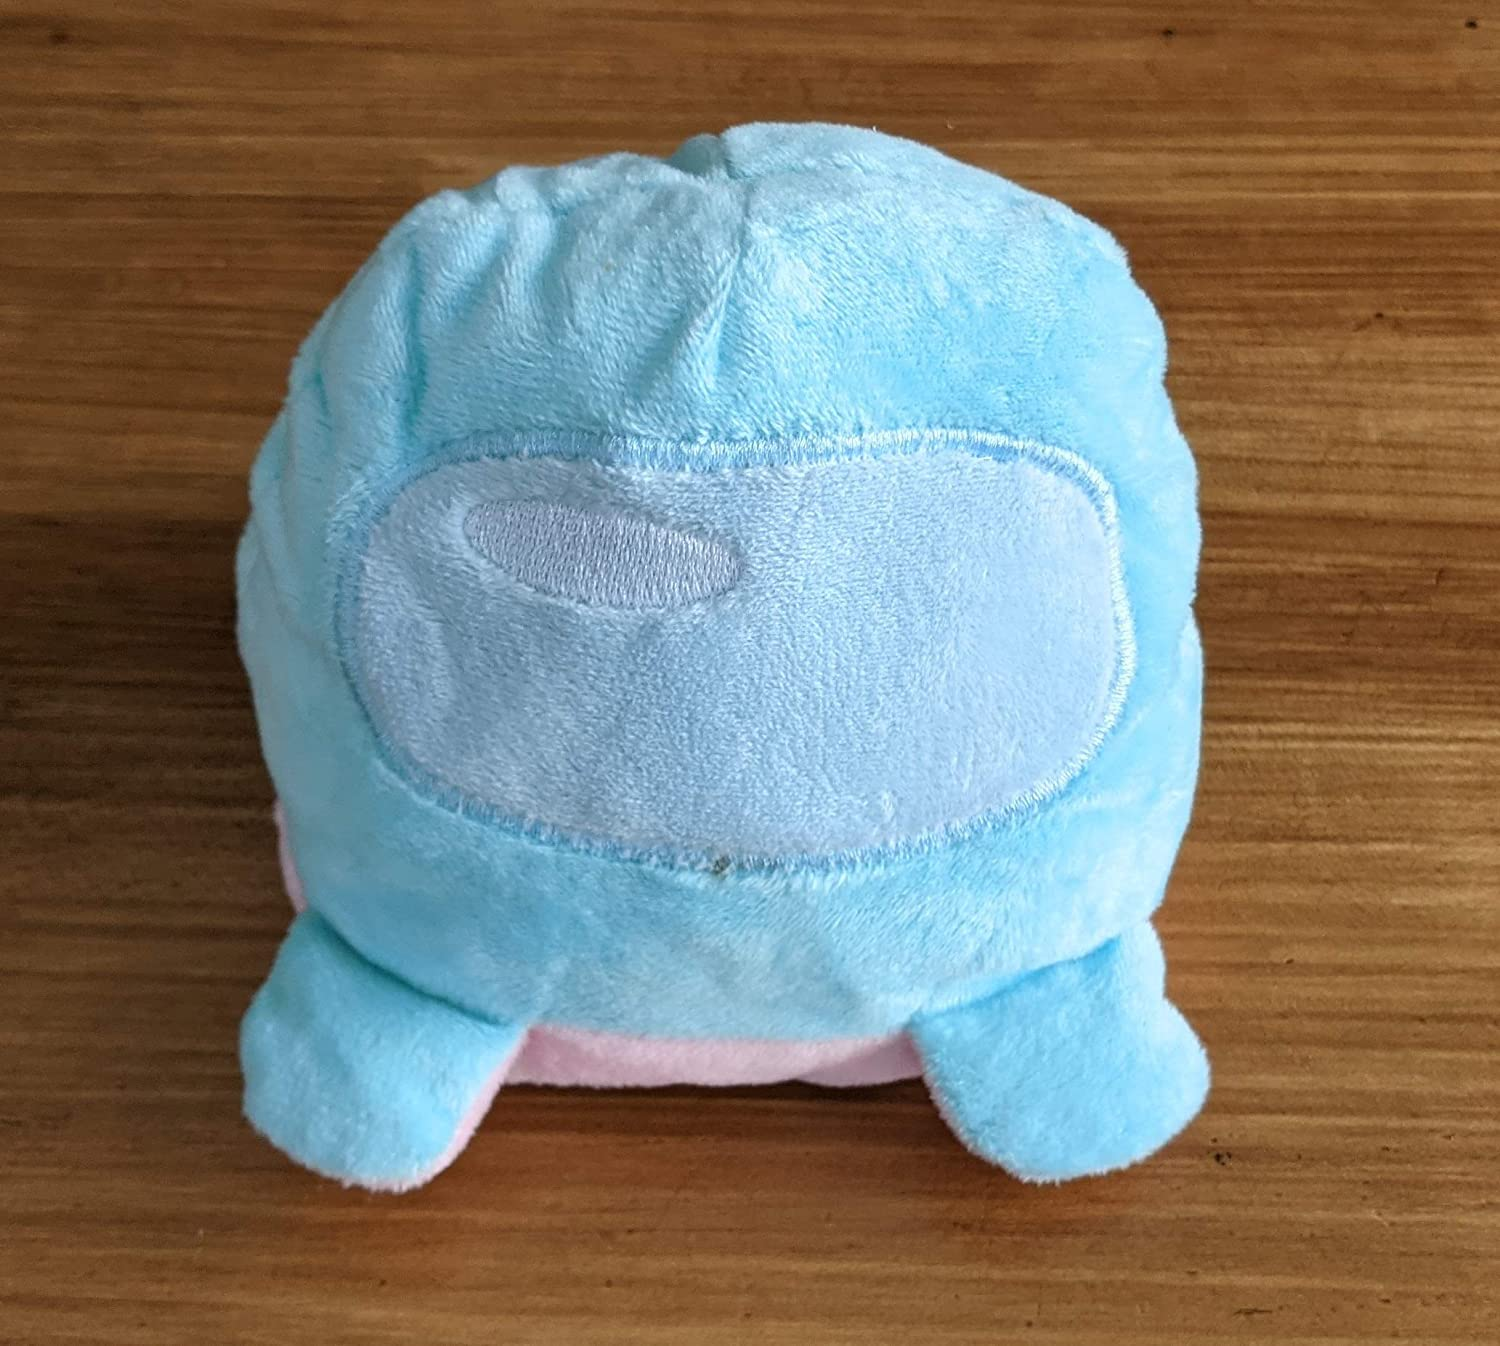 Among Us Double-Sided Plush Toy Blue and Green Teens Adults Boys Reversible Stuffed Animal Girls Turn Inside-Out Video Game Doll Cute and Soft Gift for Kids